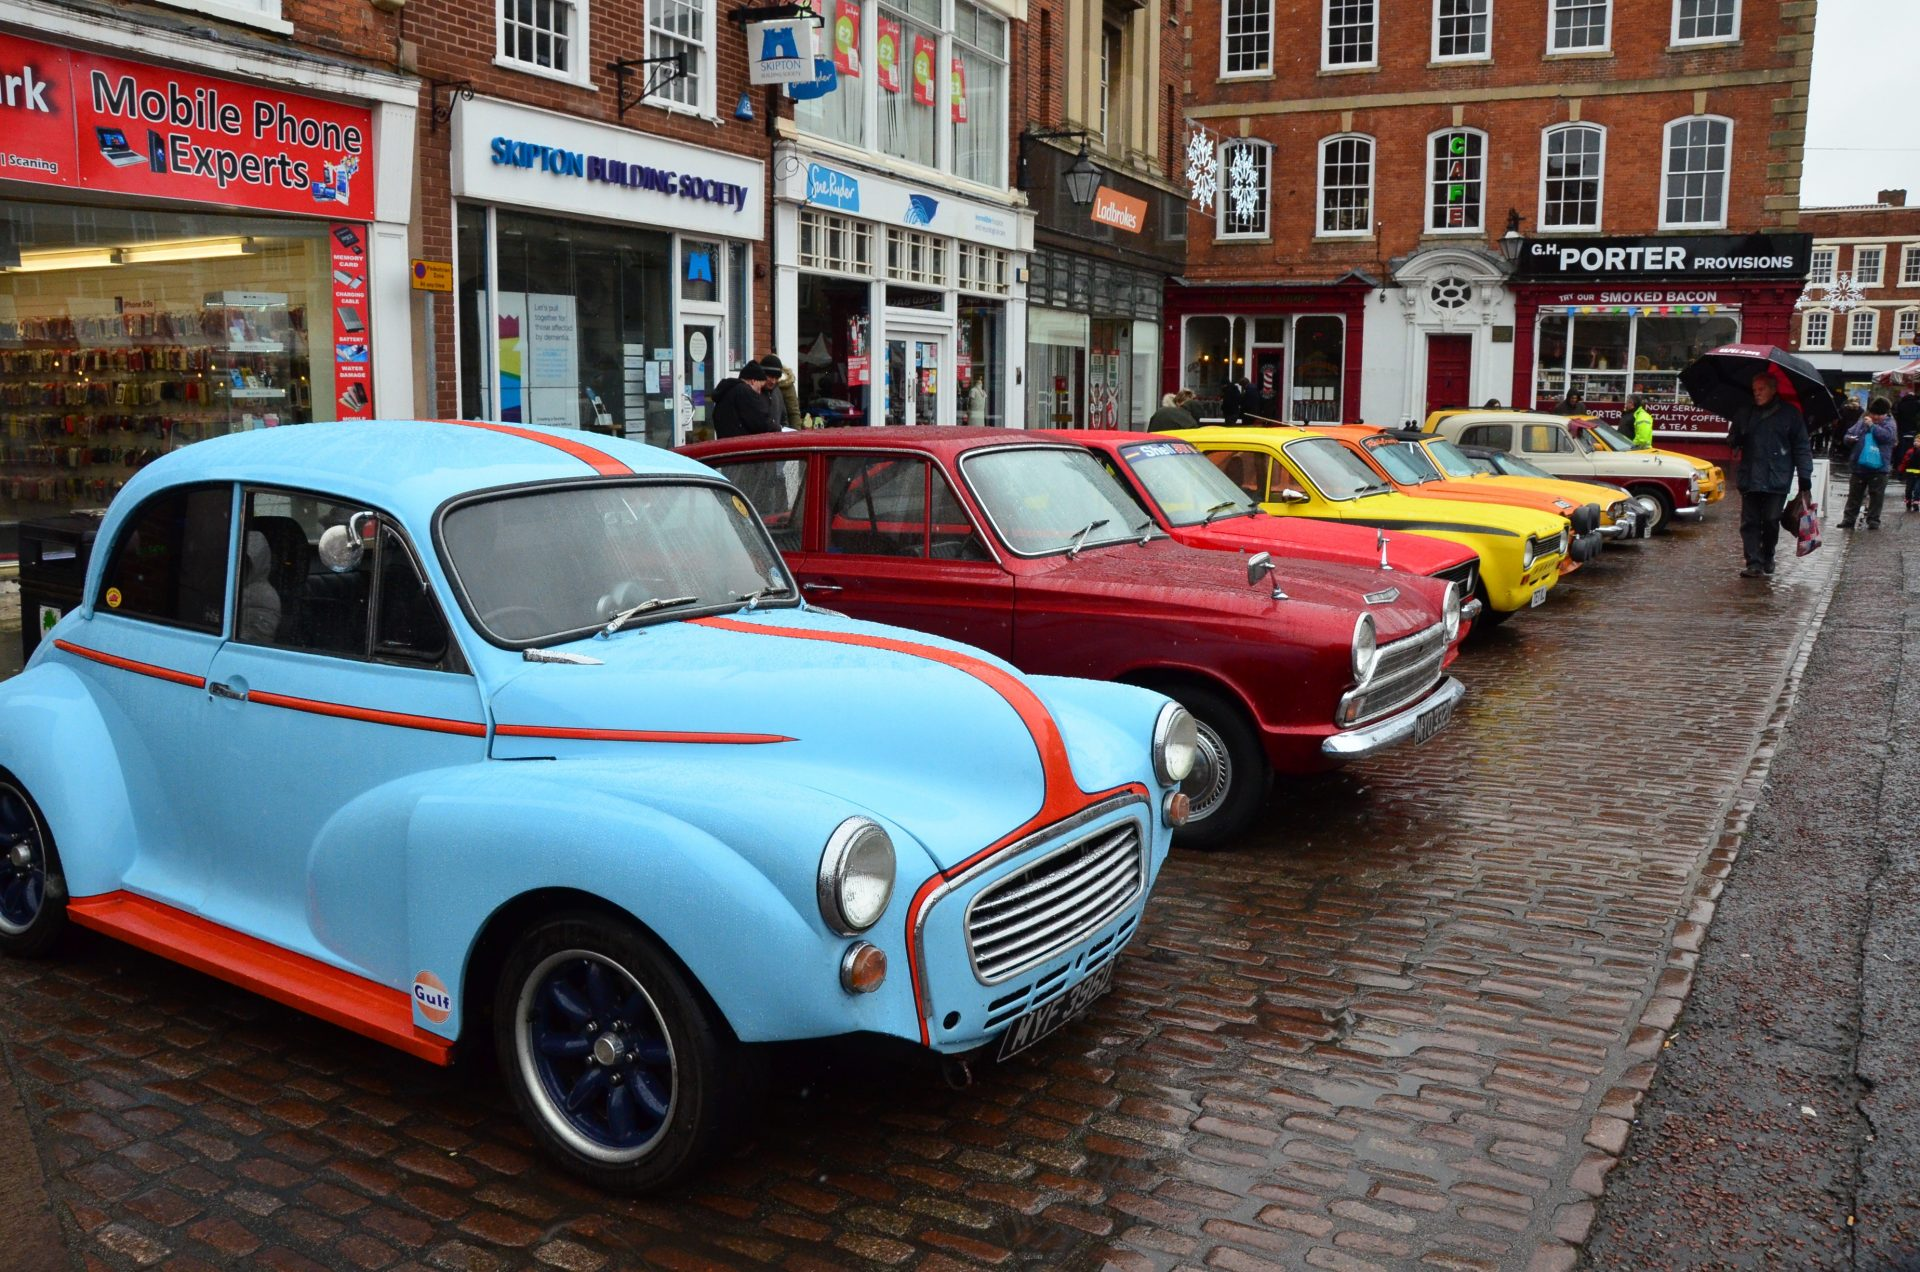 A row of vintage cars lined up in Newark Market